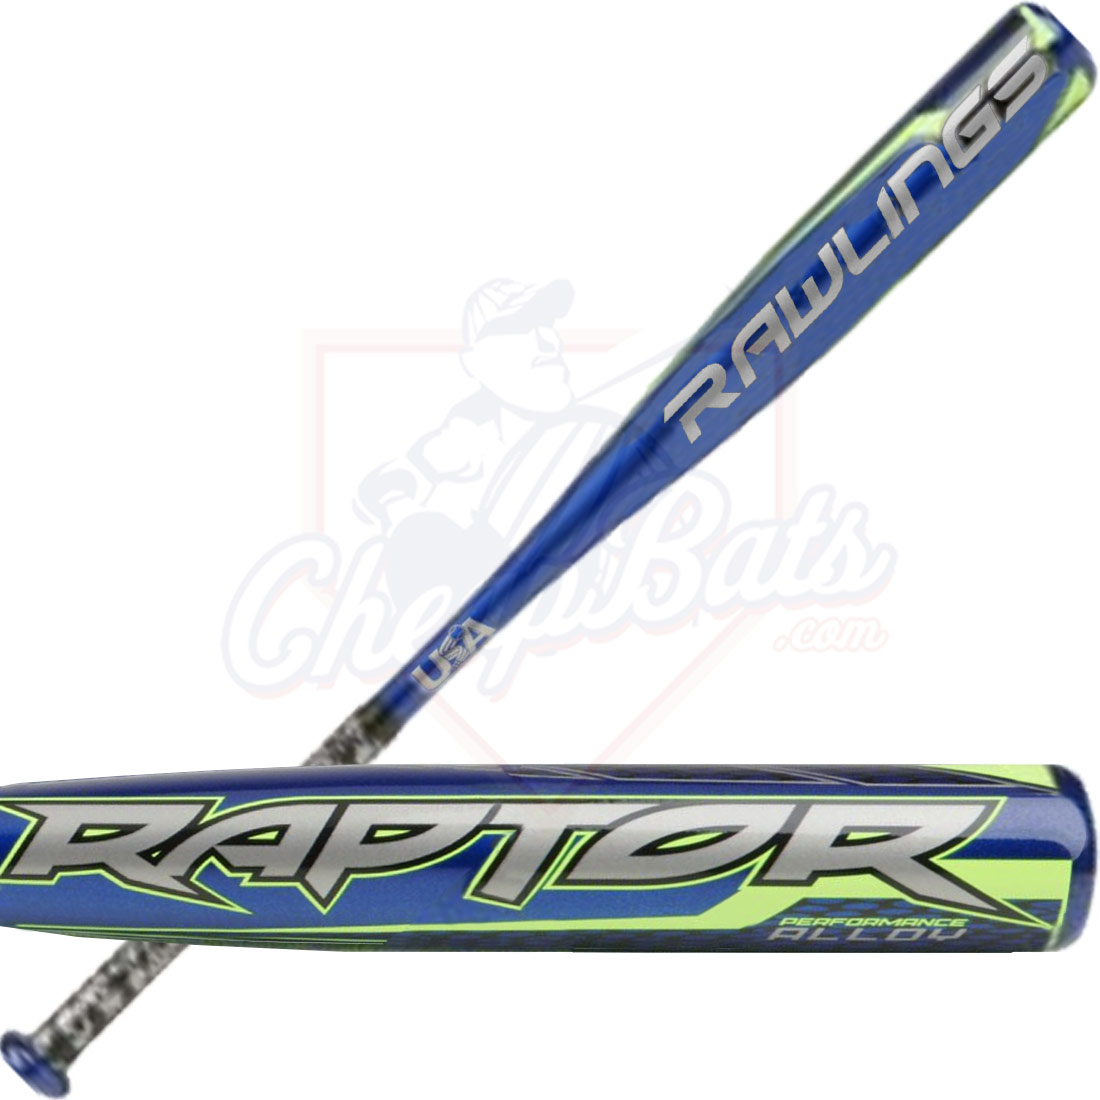 2020 Rawlings Raptor Youth USA Baseball Bat -10oz USZR10